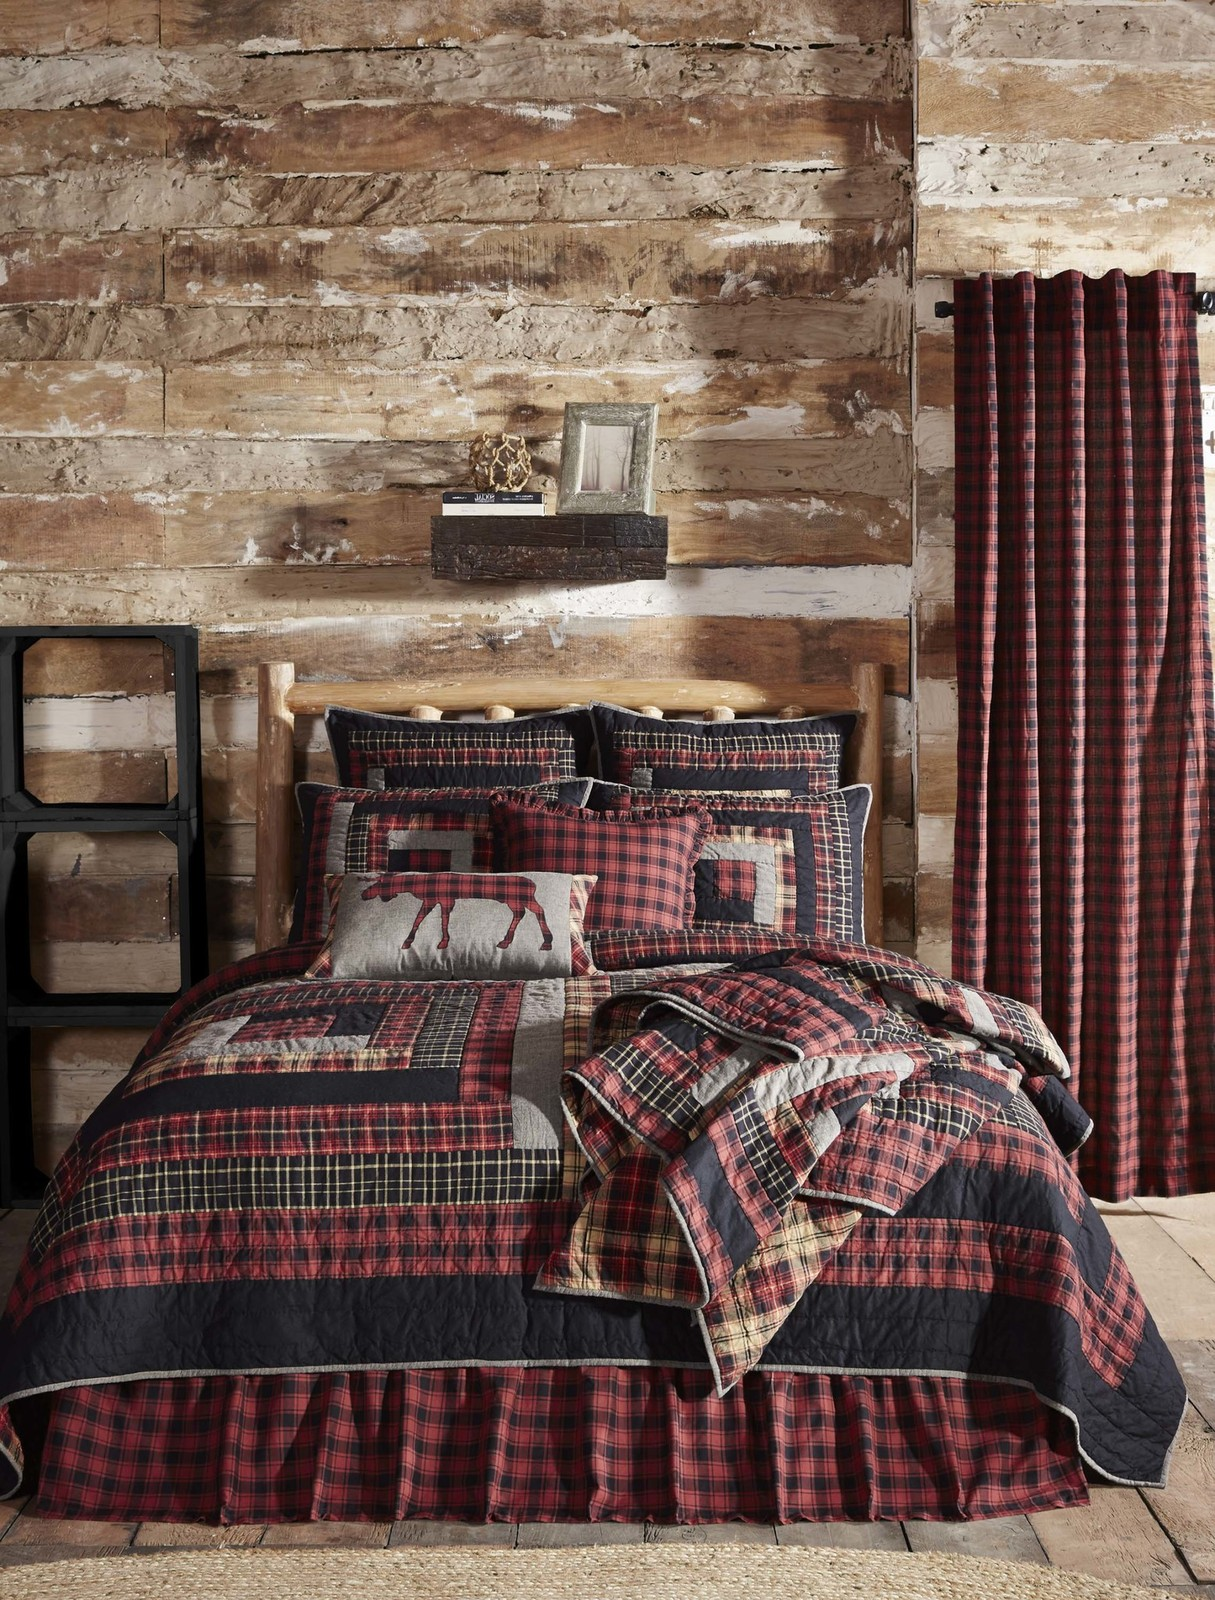 6-pc Cumberland King Quilt Bundle - Heirloom Quilt from VHC Brands -Rustic Charm